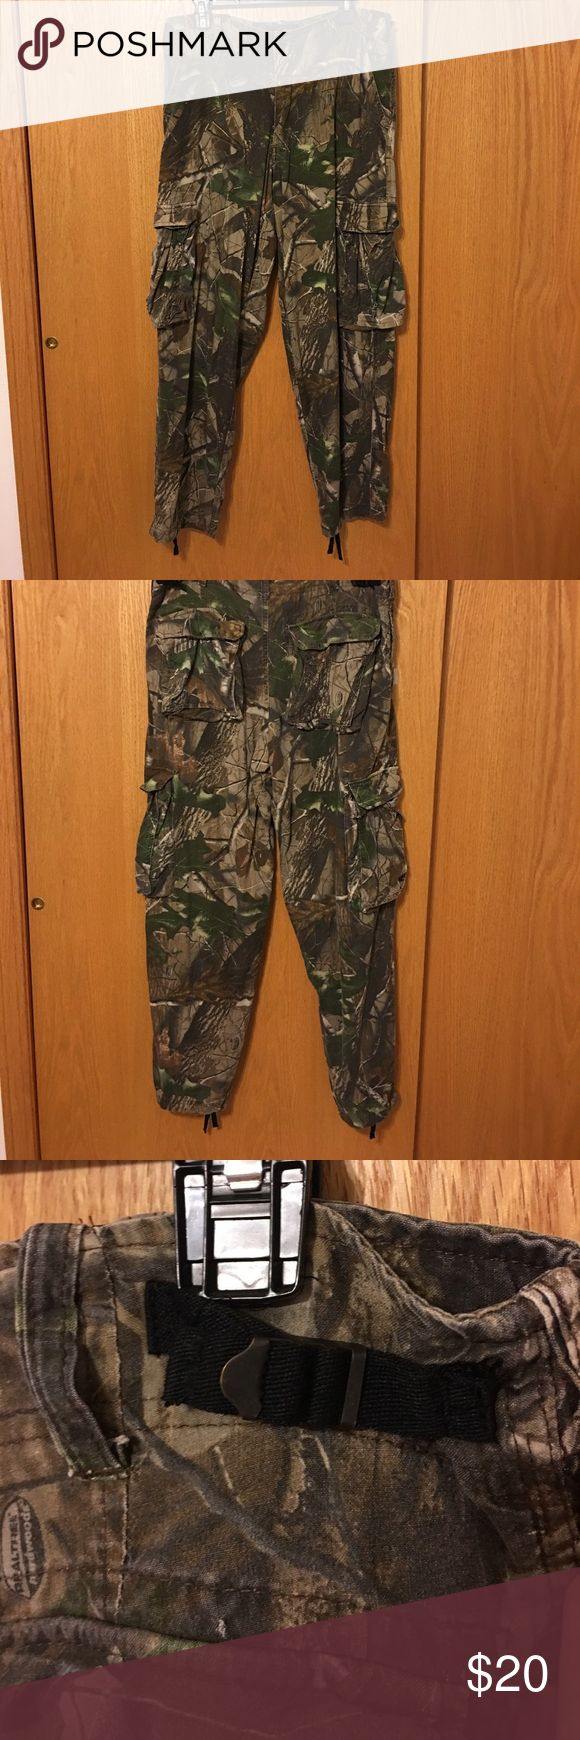 """Redhead men's rayon Camo cargo pants Medium Men's camouflage pants size medium. Waist adjusts from about 32"""" up to about 38"""" with cinches on back of waist. Zip fly and button closure, belt loops and hip pockets, including a hidden pocket on right hip. Large side pockets near knees and back pockets with flap & button close. Drawstrings in ankle hem for wearing with boots. 100% rayon allows quiet movement. Real tree hardwood pattern. Lightweight for warmer days, room to layer over under armour…"""